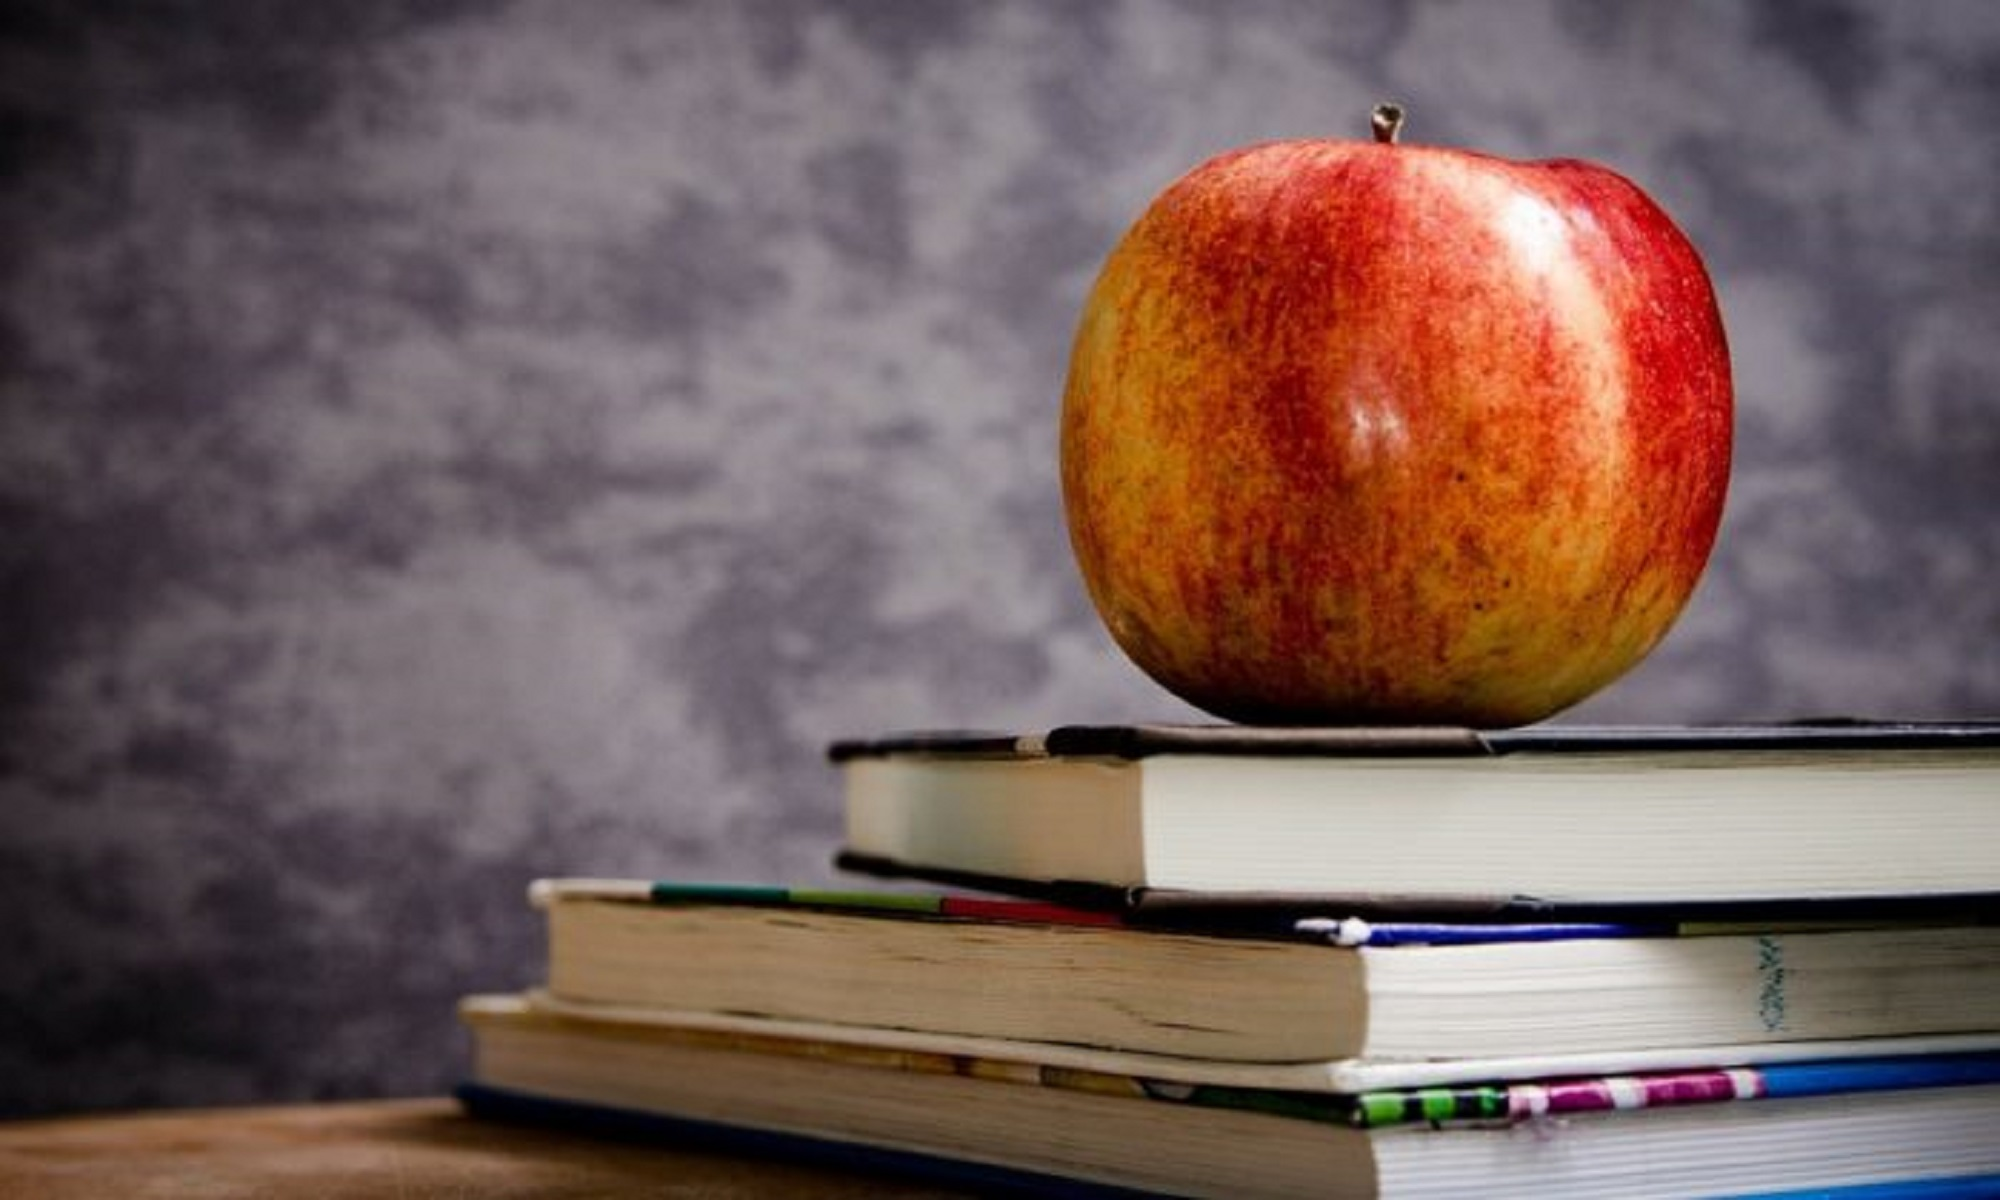 A photo of an apple on top of some books